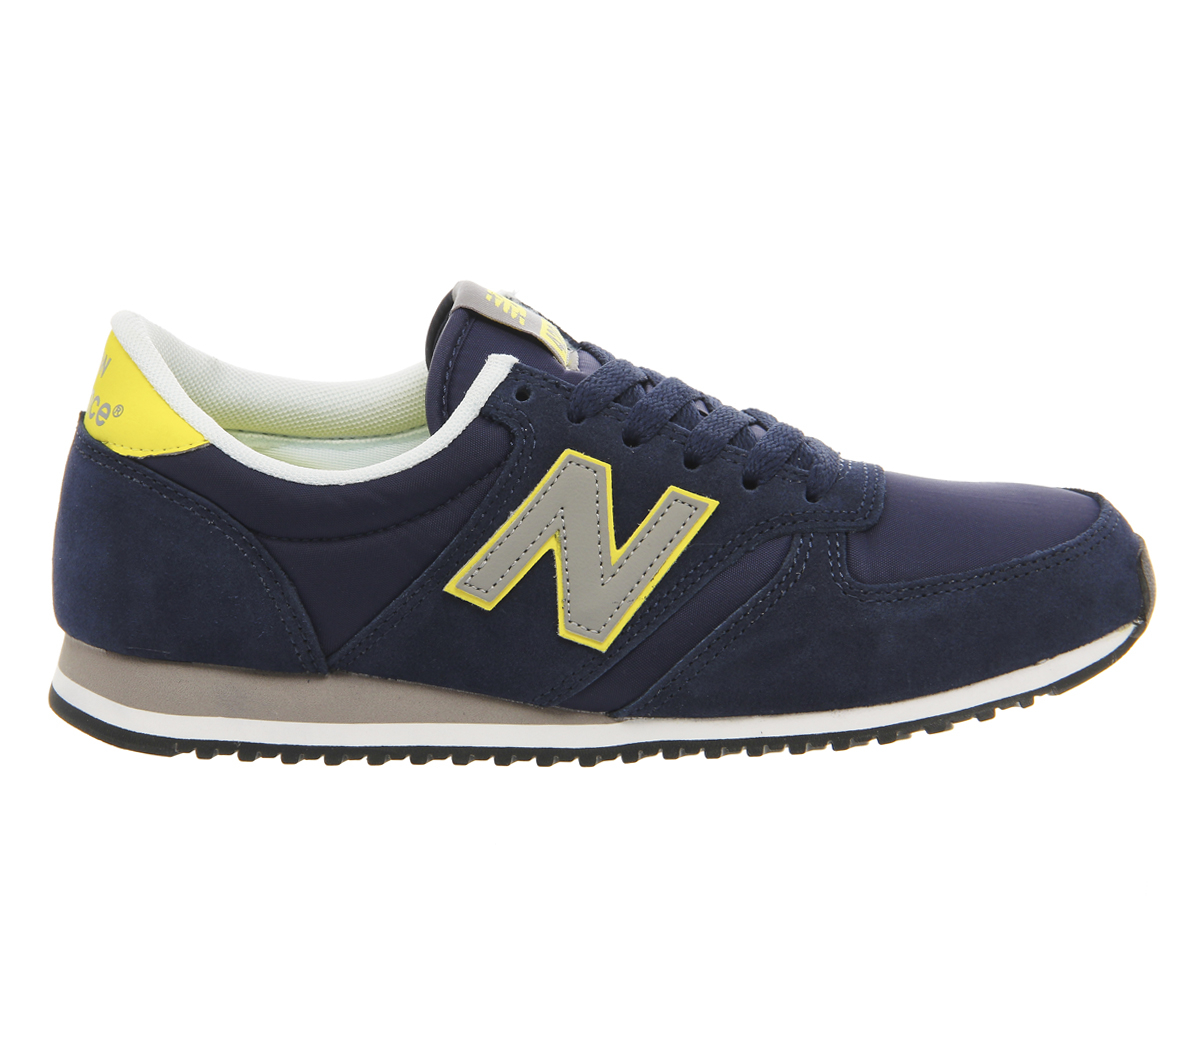 new balance u420 navy blue